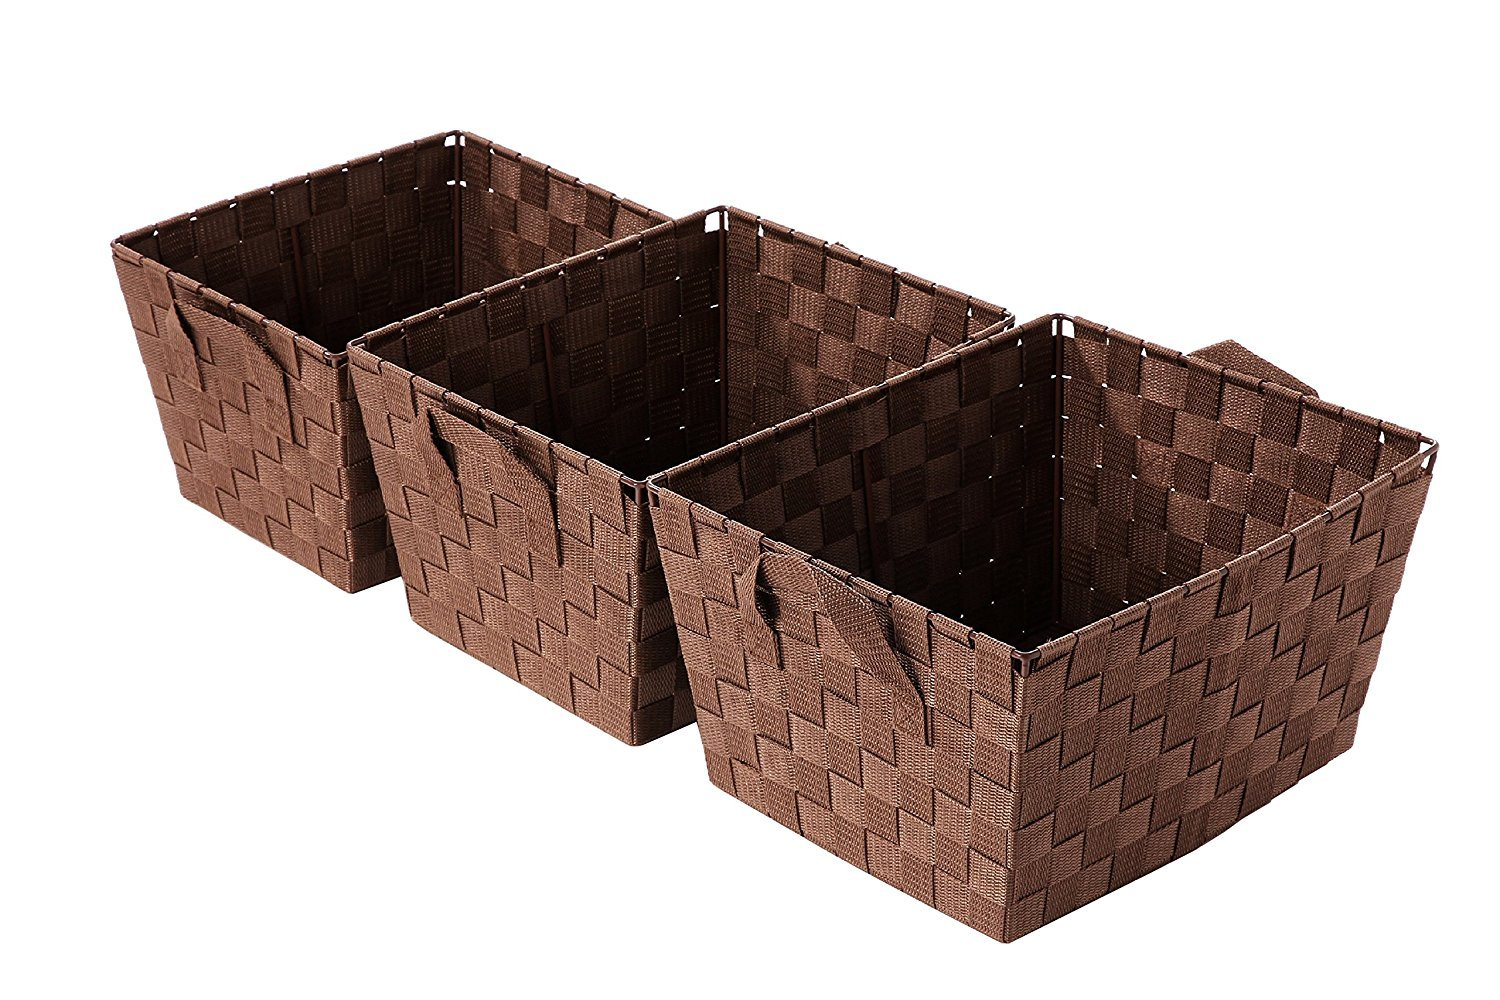 Juvale Woven Storage Baskets - 3-Piece Storage Tote Baskets, Woven Strap Organization Containers, Decorative Shelf… -  - living-room-decor, living-room, baskets-storage - 81sY7t%2BFweL -